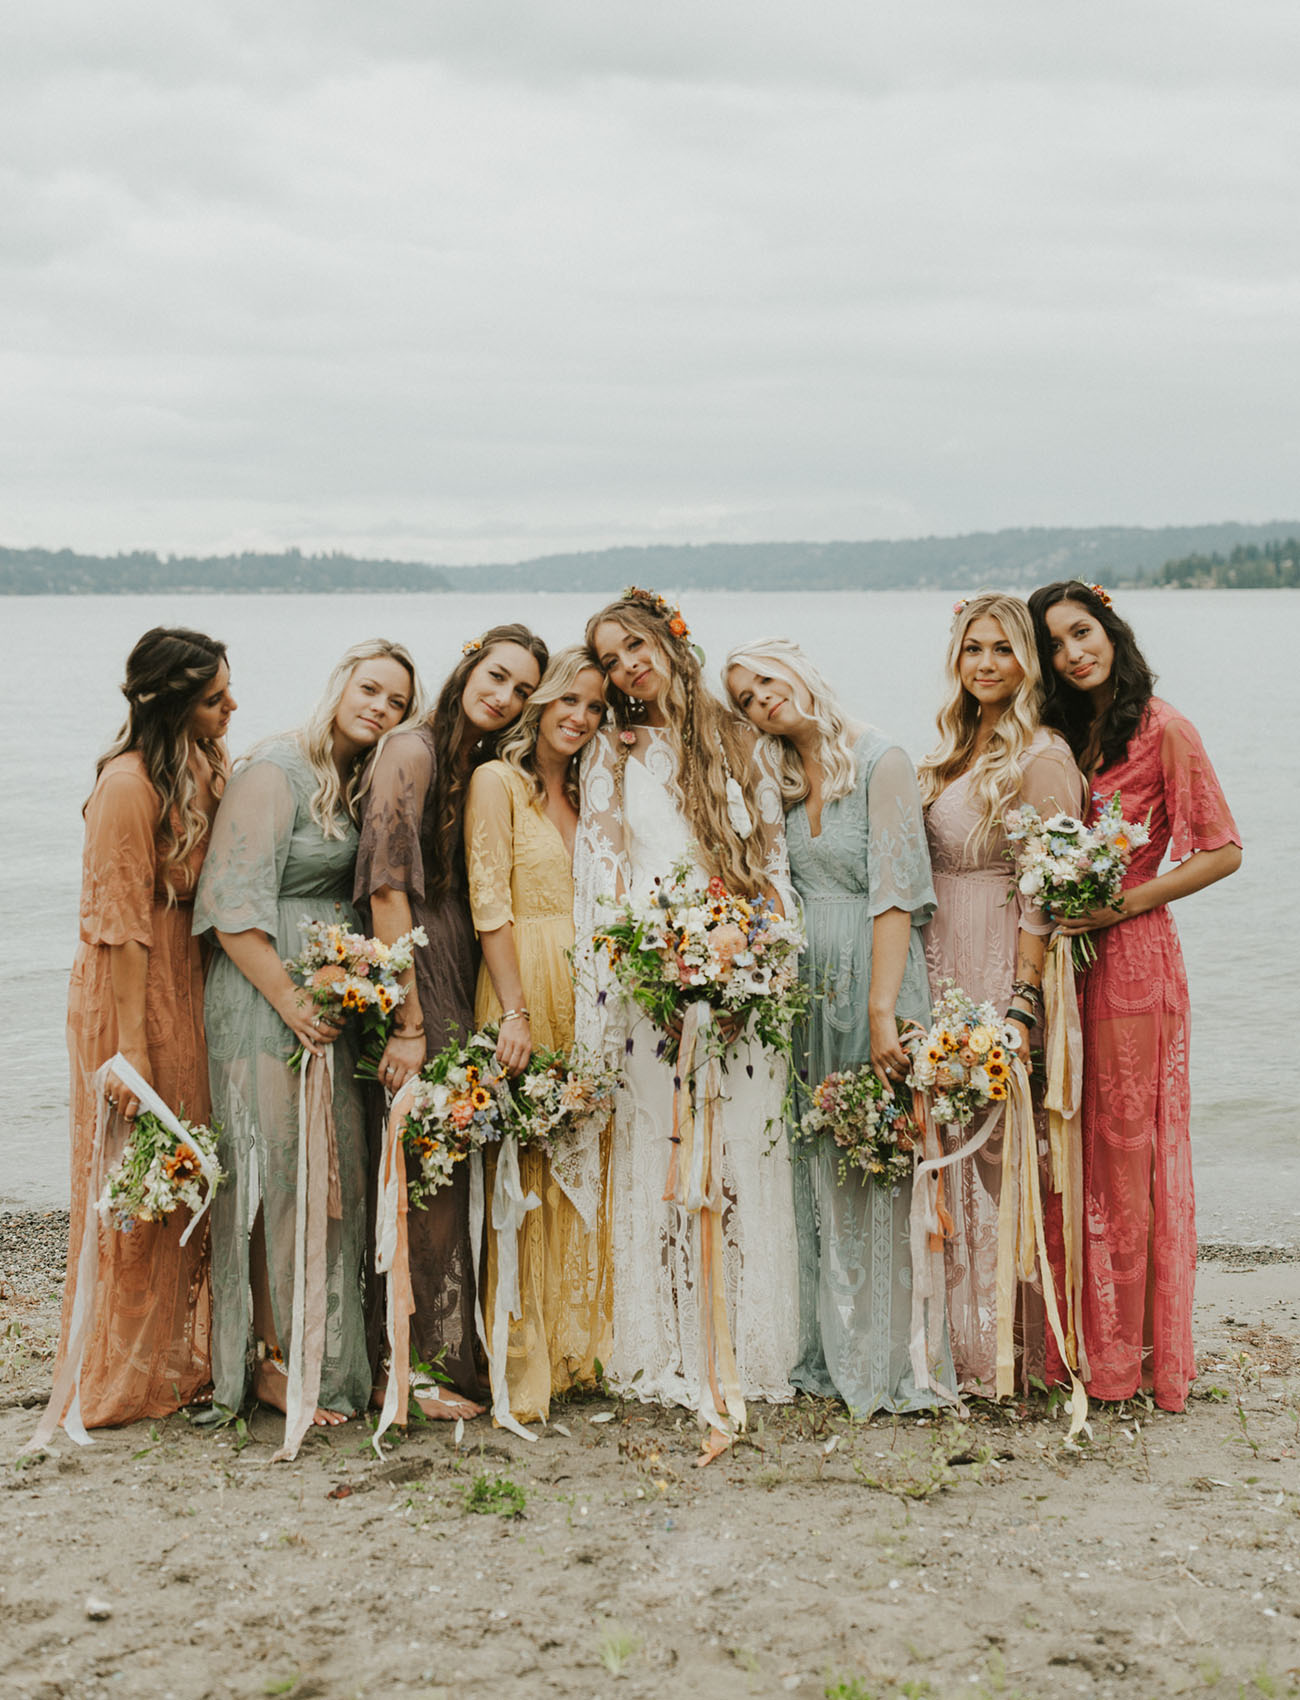 The bridesmaids were wearing pastel and muted color lace dresses and carrying similar bouquets